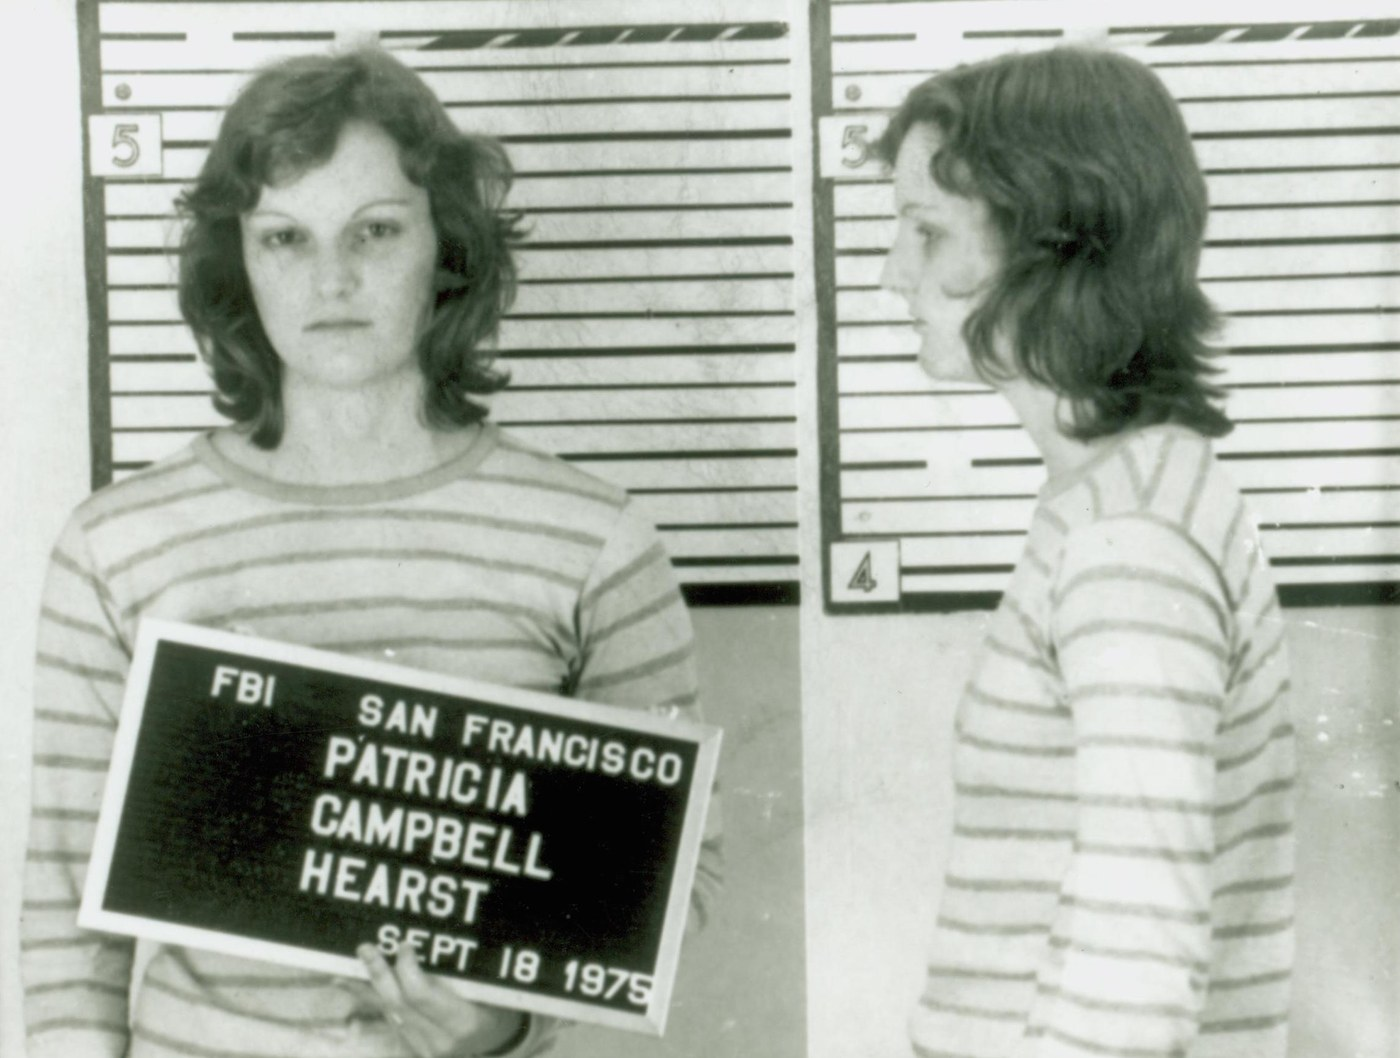 patty hearst Patty hearst aka patricia campbell hearst kidnapped by sla birthplace: san francisco, ca gender: female race or ethnicity: white sexual orientation: straight occupation: victi father: randolph apperson hearst mother: catherine campbell (d 30-dec-1998) boyfriend: steven weed (boyfriend at time of kidnap, ex-) husband: bernard shaw (police officer, m.